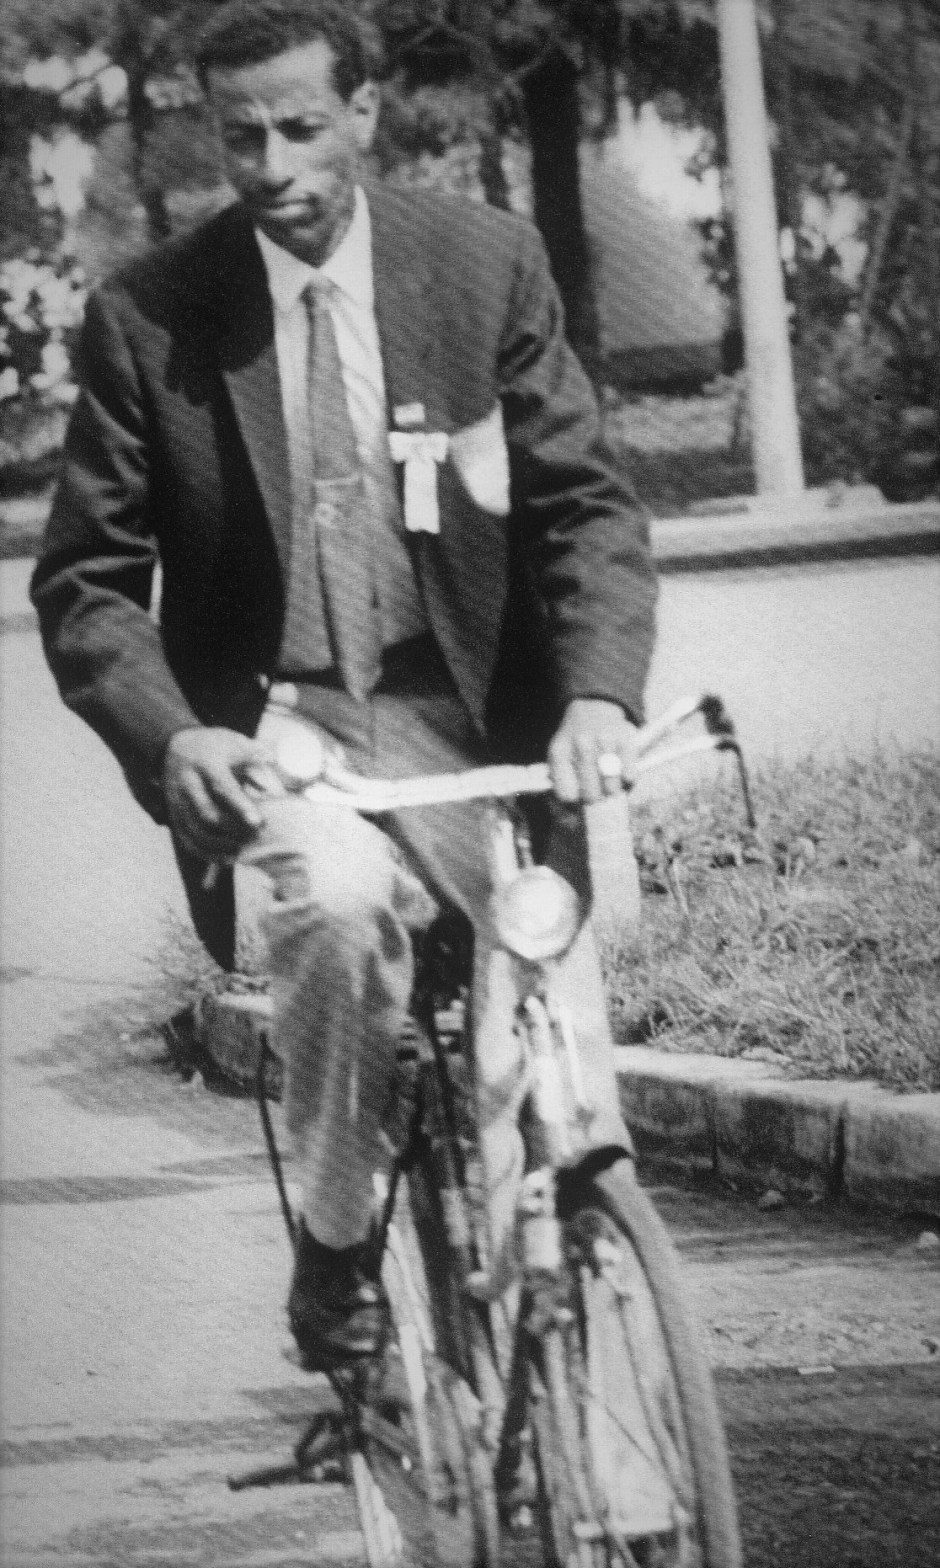 Abebe Bikila on a bicycle_Bi to Chikara